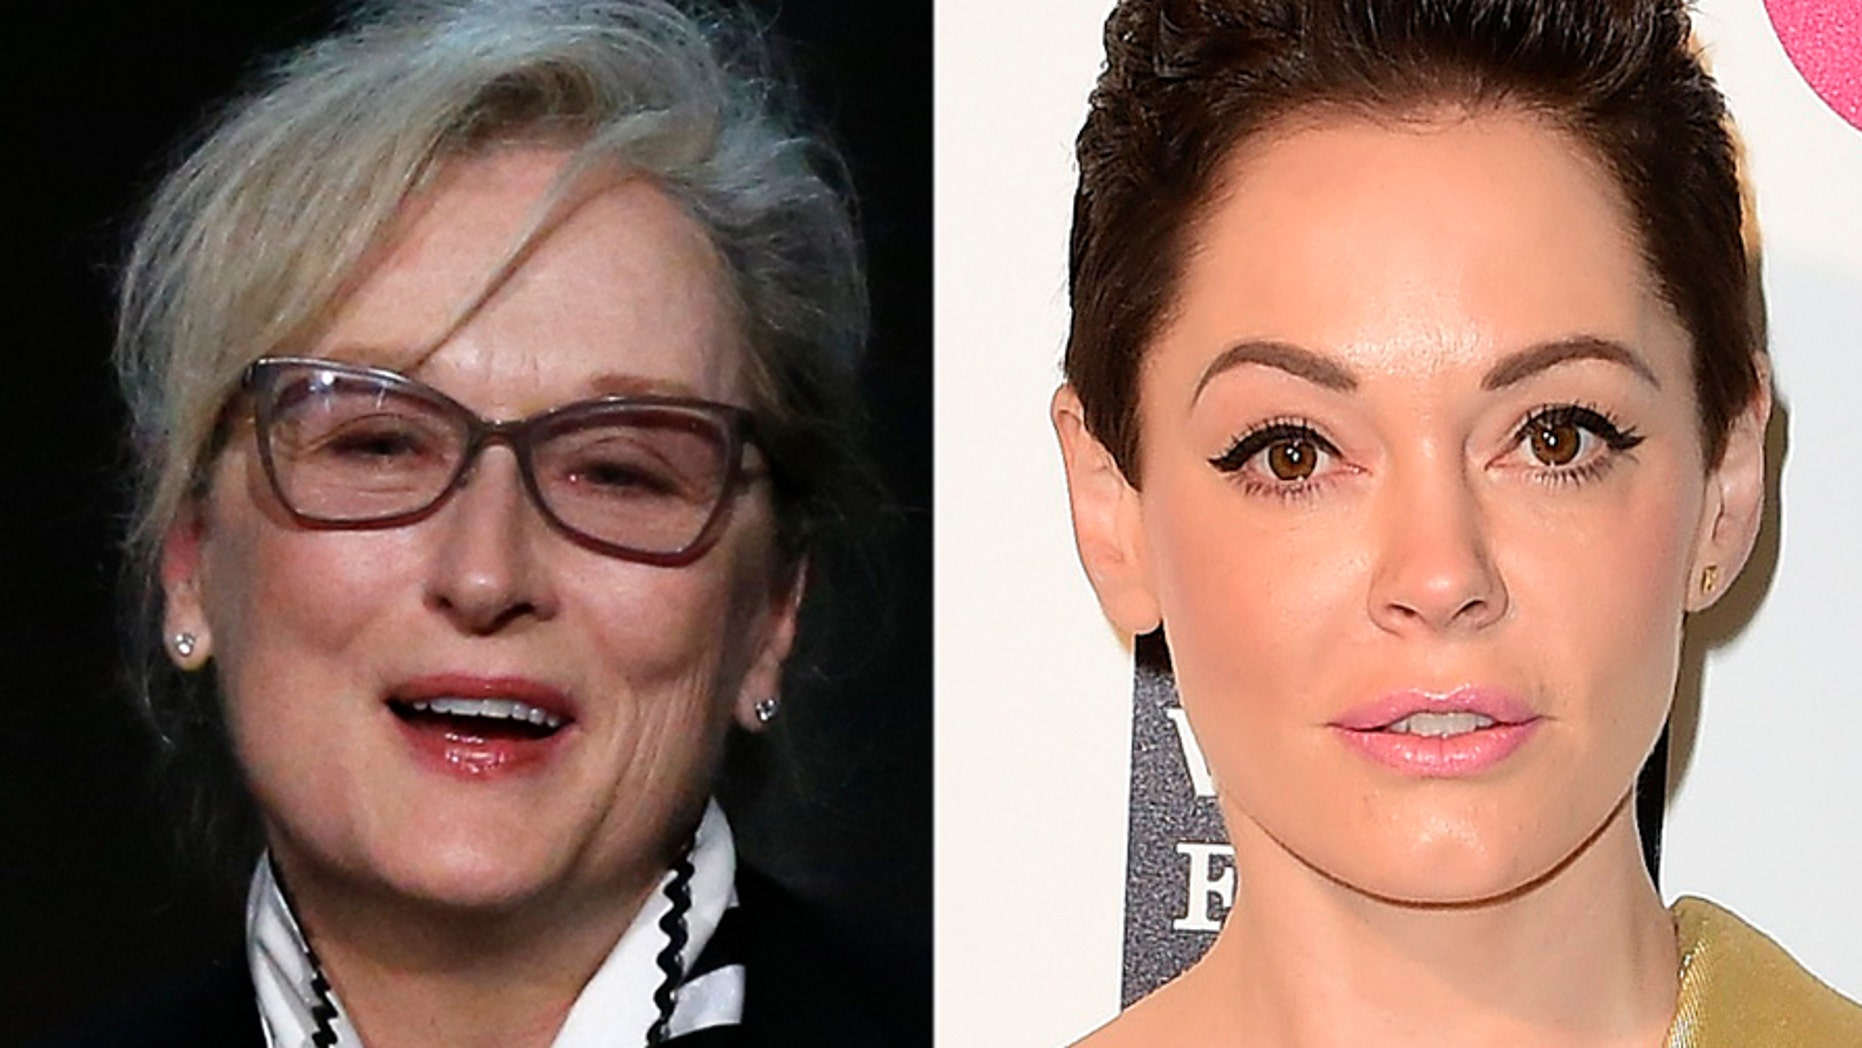 Meryl Streep and Rose McGowan.